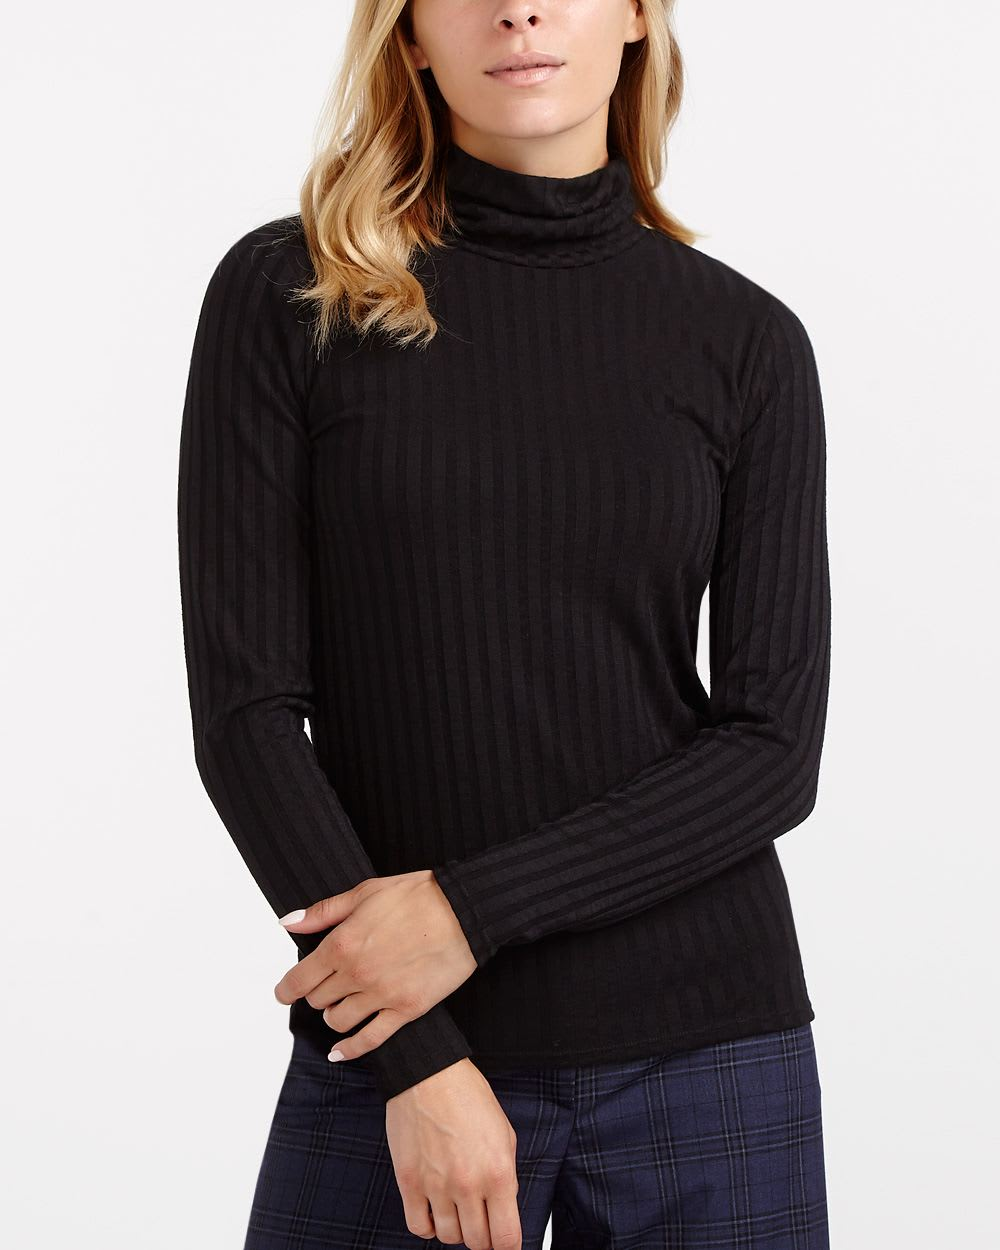 Free shipping BOTH ways on womens long sleeve turtleneck, from our vast selection of styles. Fast delivery, and 24/7/ real-person service with a smile. Click or call